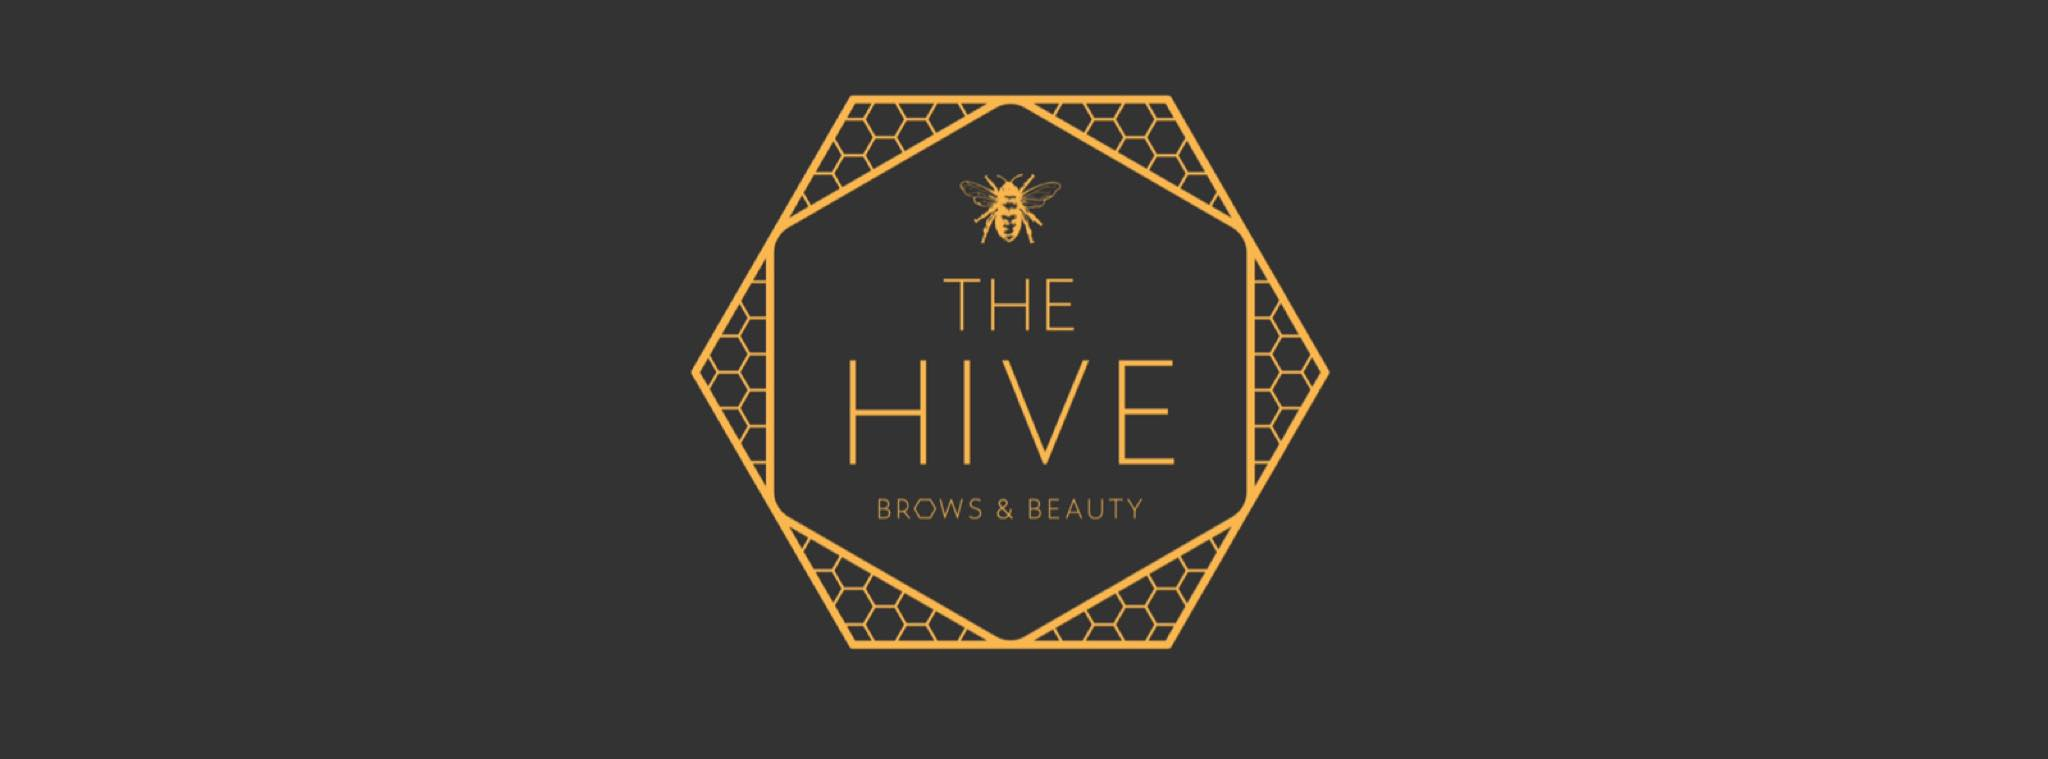 The Hive Brows & Beauty